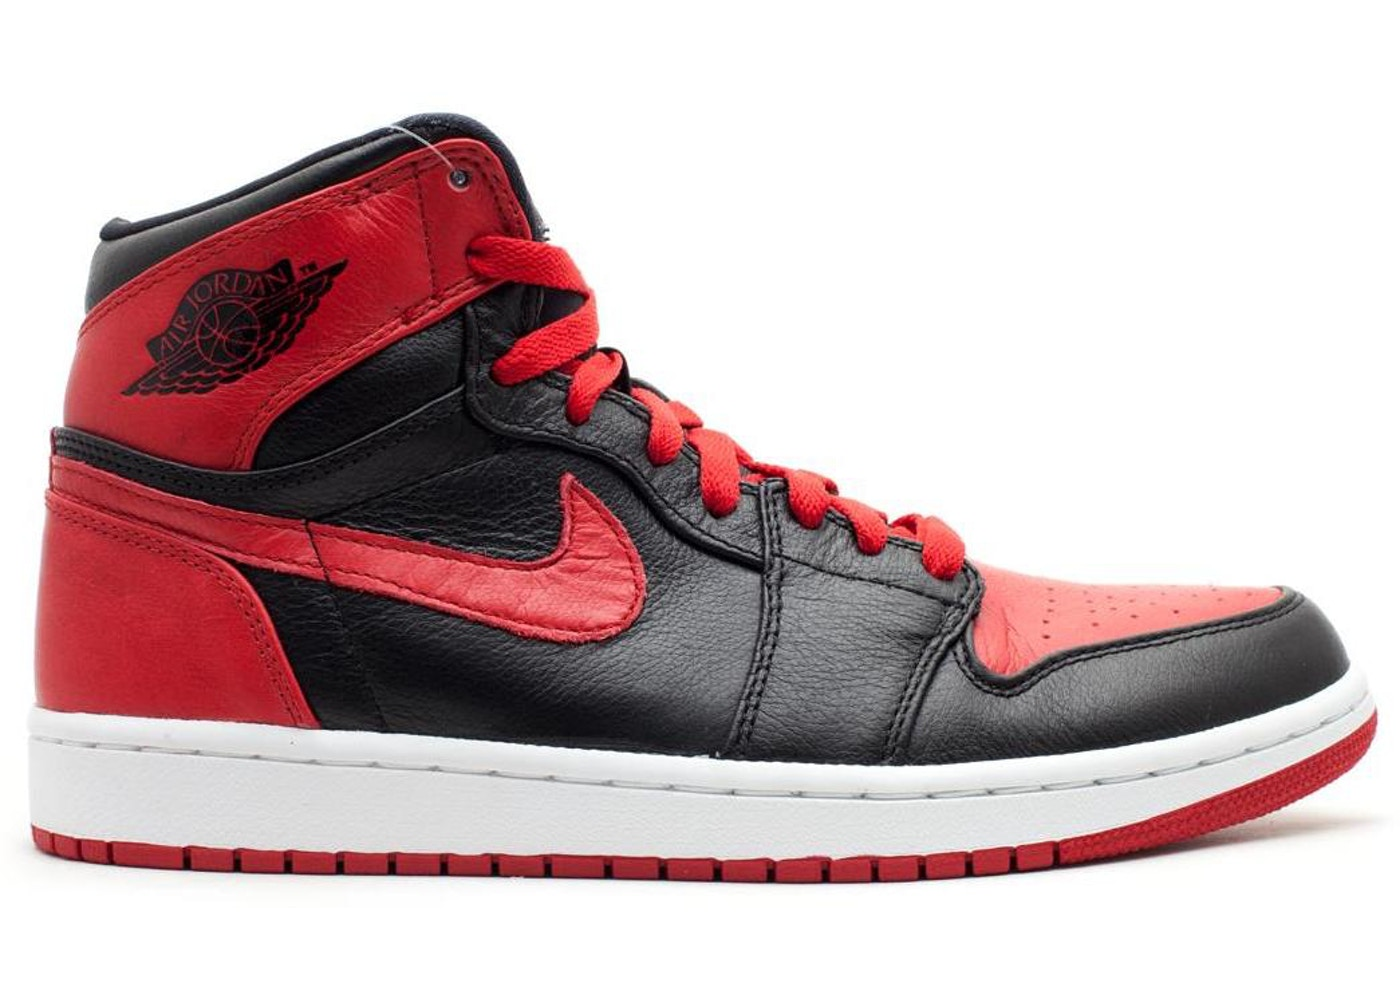 buy popular c6678 df9df Jordan 1 Retro Banned (2011) - 432001-001